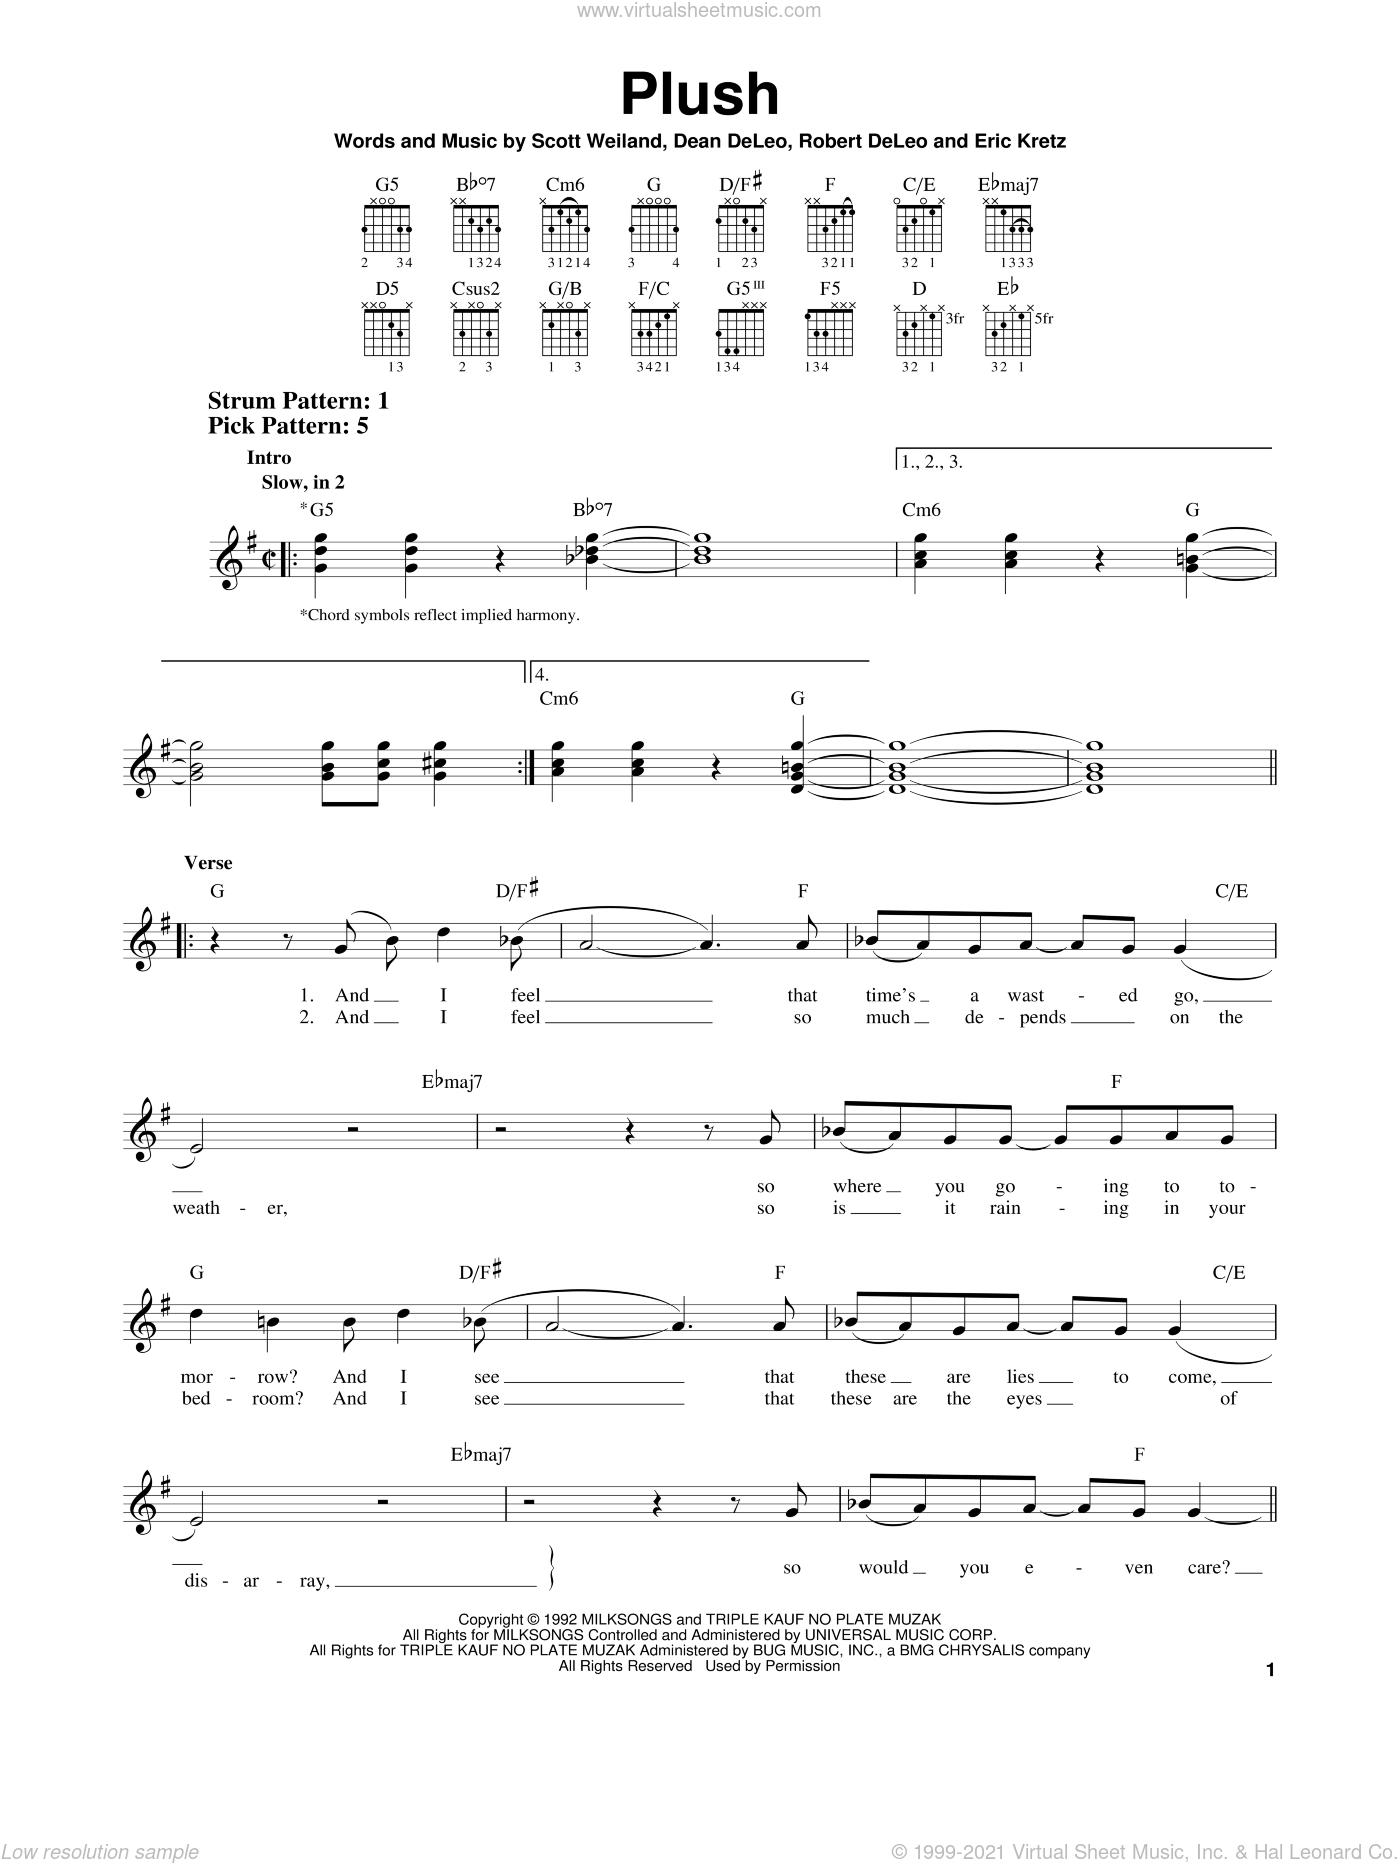 Plush sheet music for guitar solo (chords) by Stone Temple Pilots, Dean DeLeo, Eric Kretz, Robert DeLeo and Scott Weiland, easy guitar (chords)